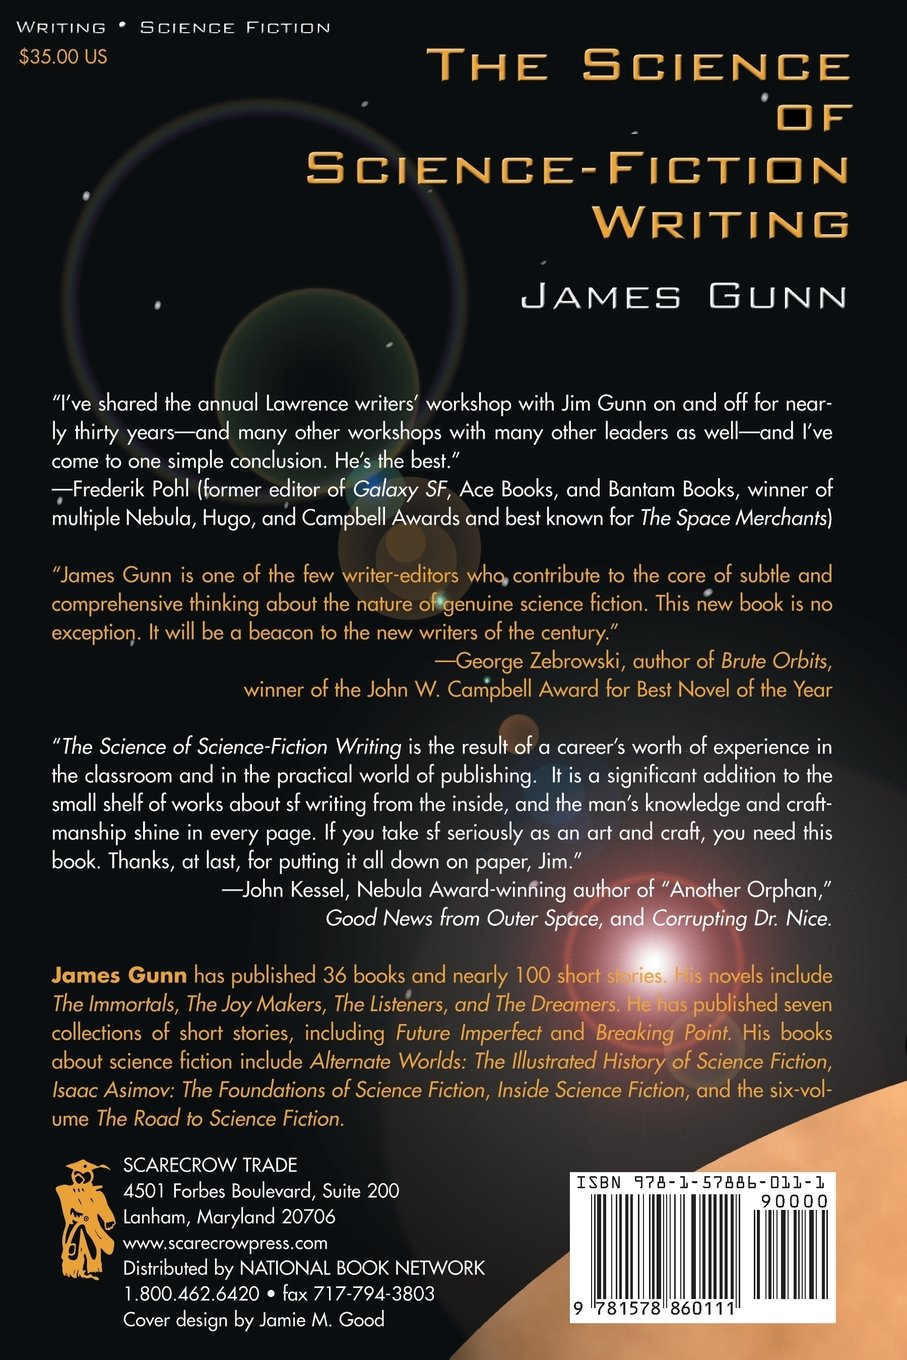 The Science of Science Fiction Writing: James Gunn: 9781578860111 ...